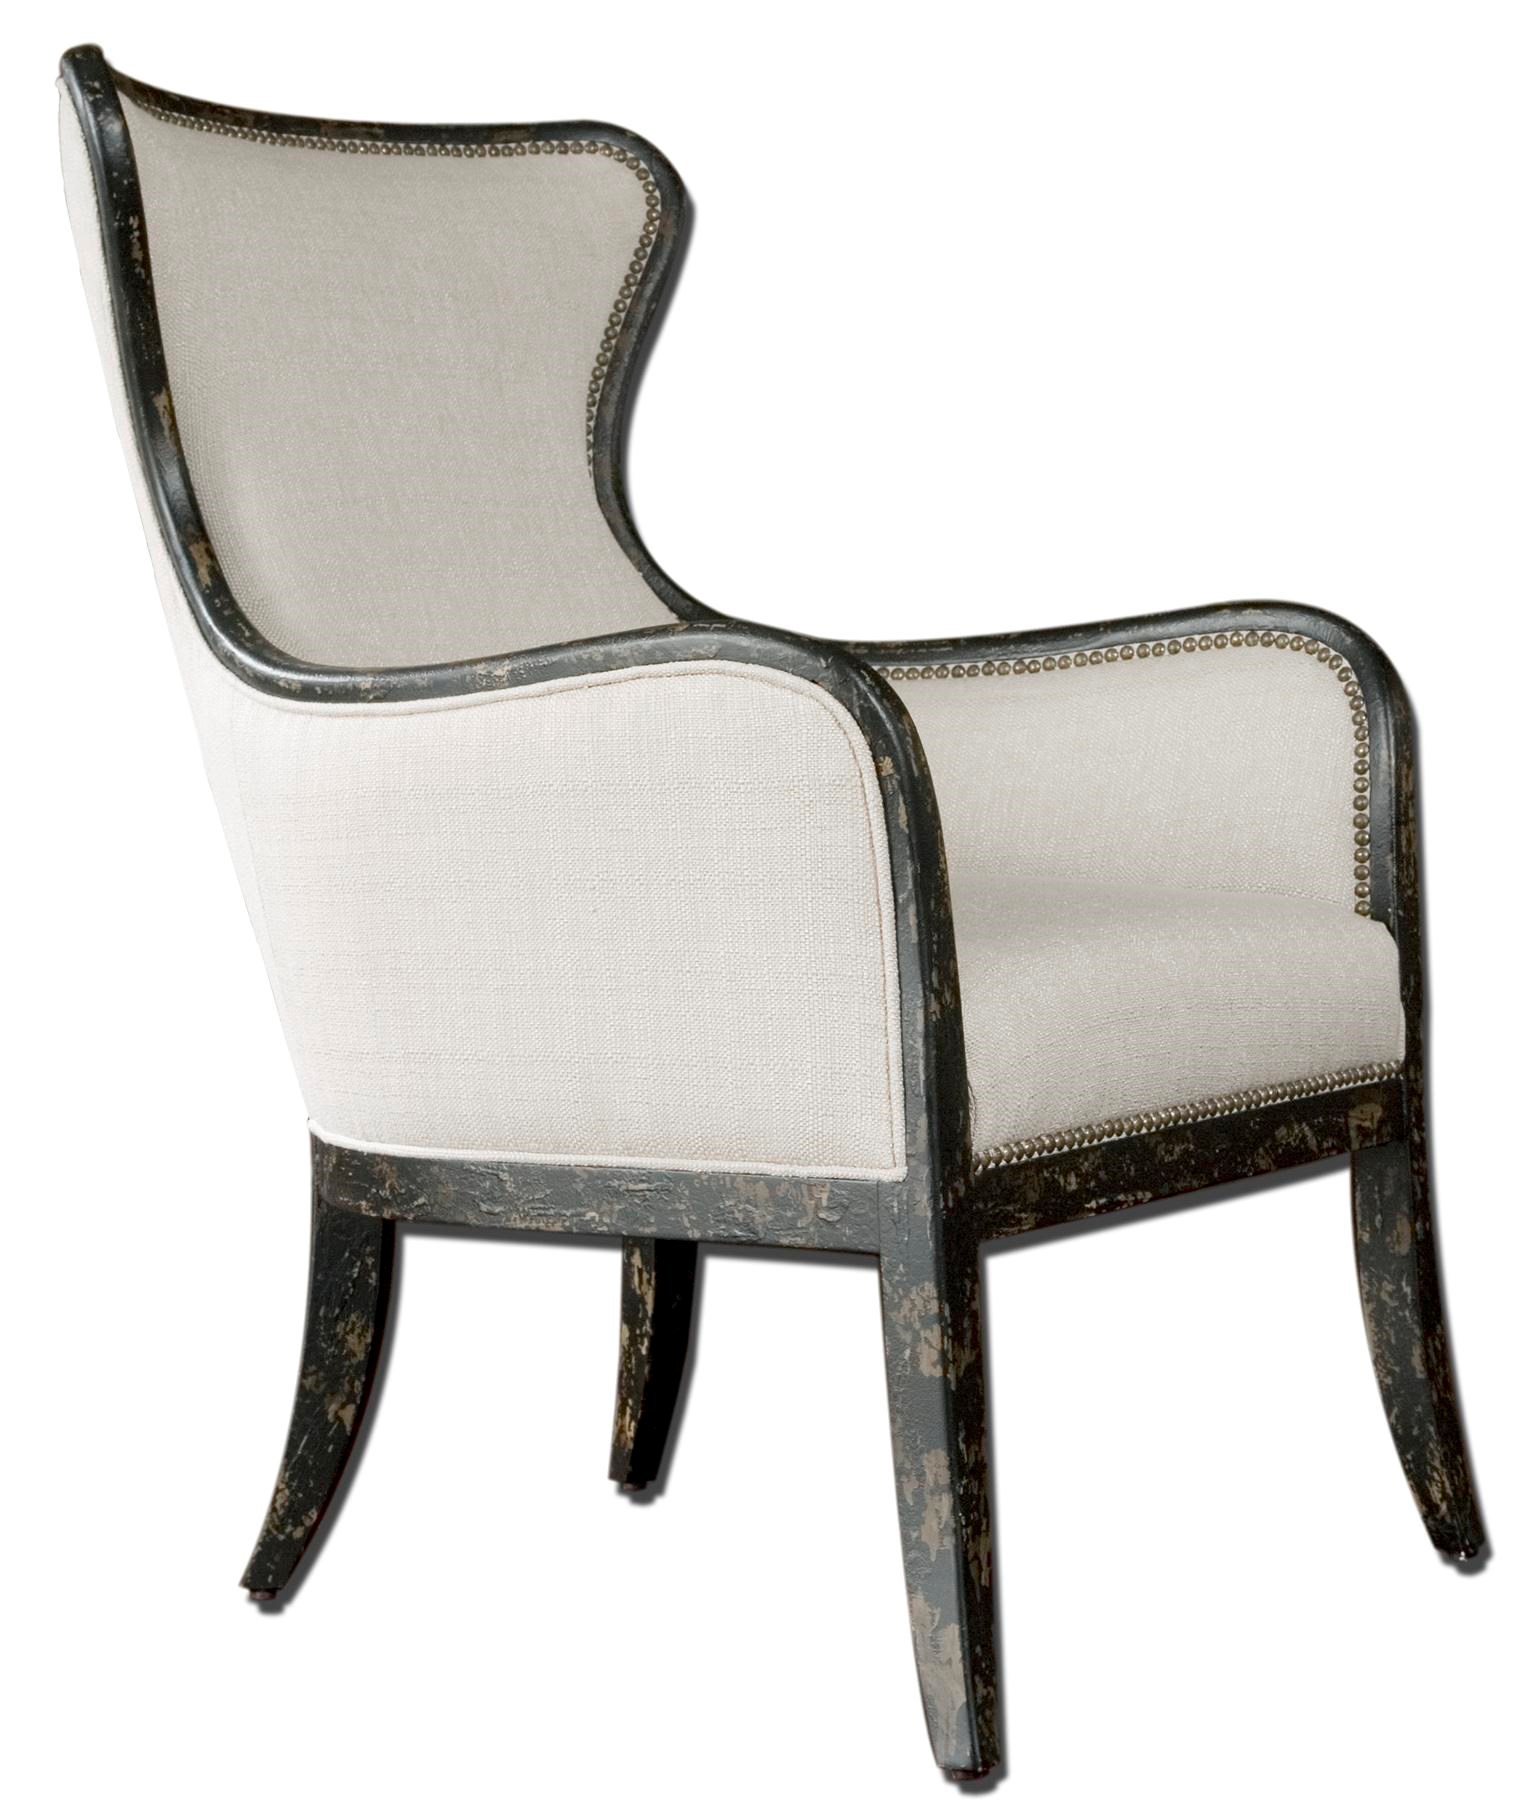 Modern Wing Chair Accent Furniture Accent Chairs Sandy Modern Wing Chair By Uttermost At Rotmans